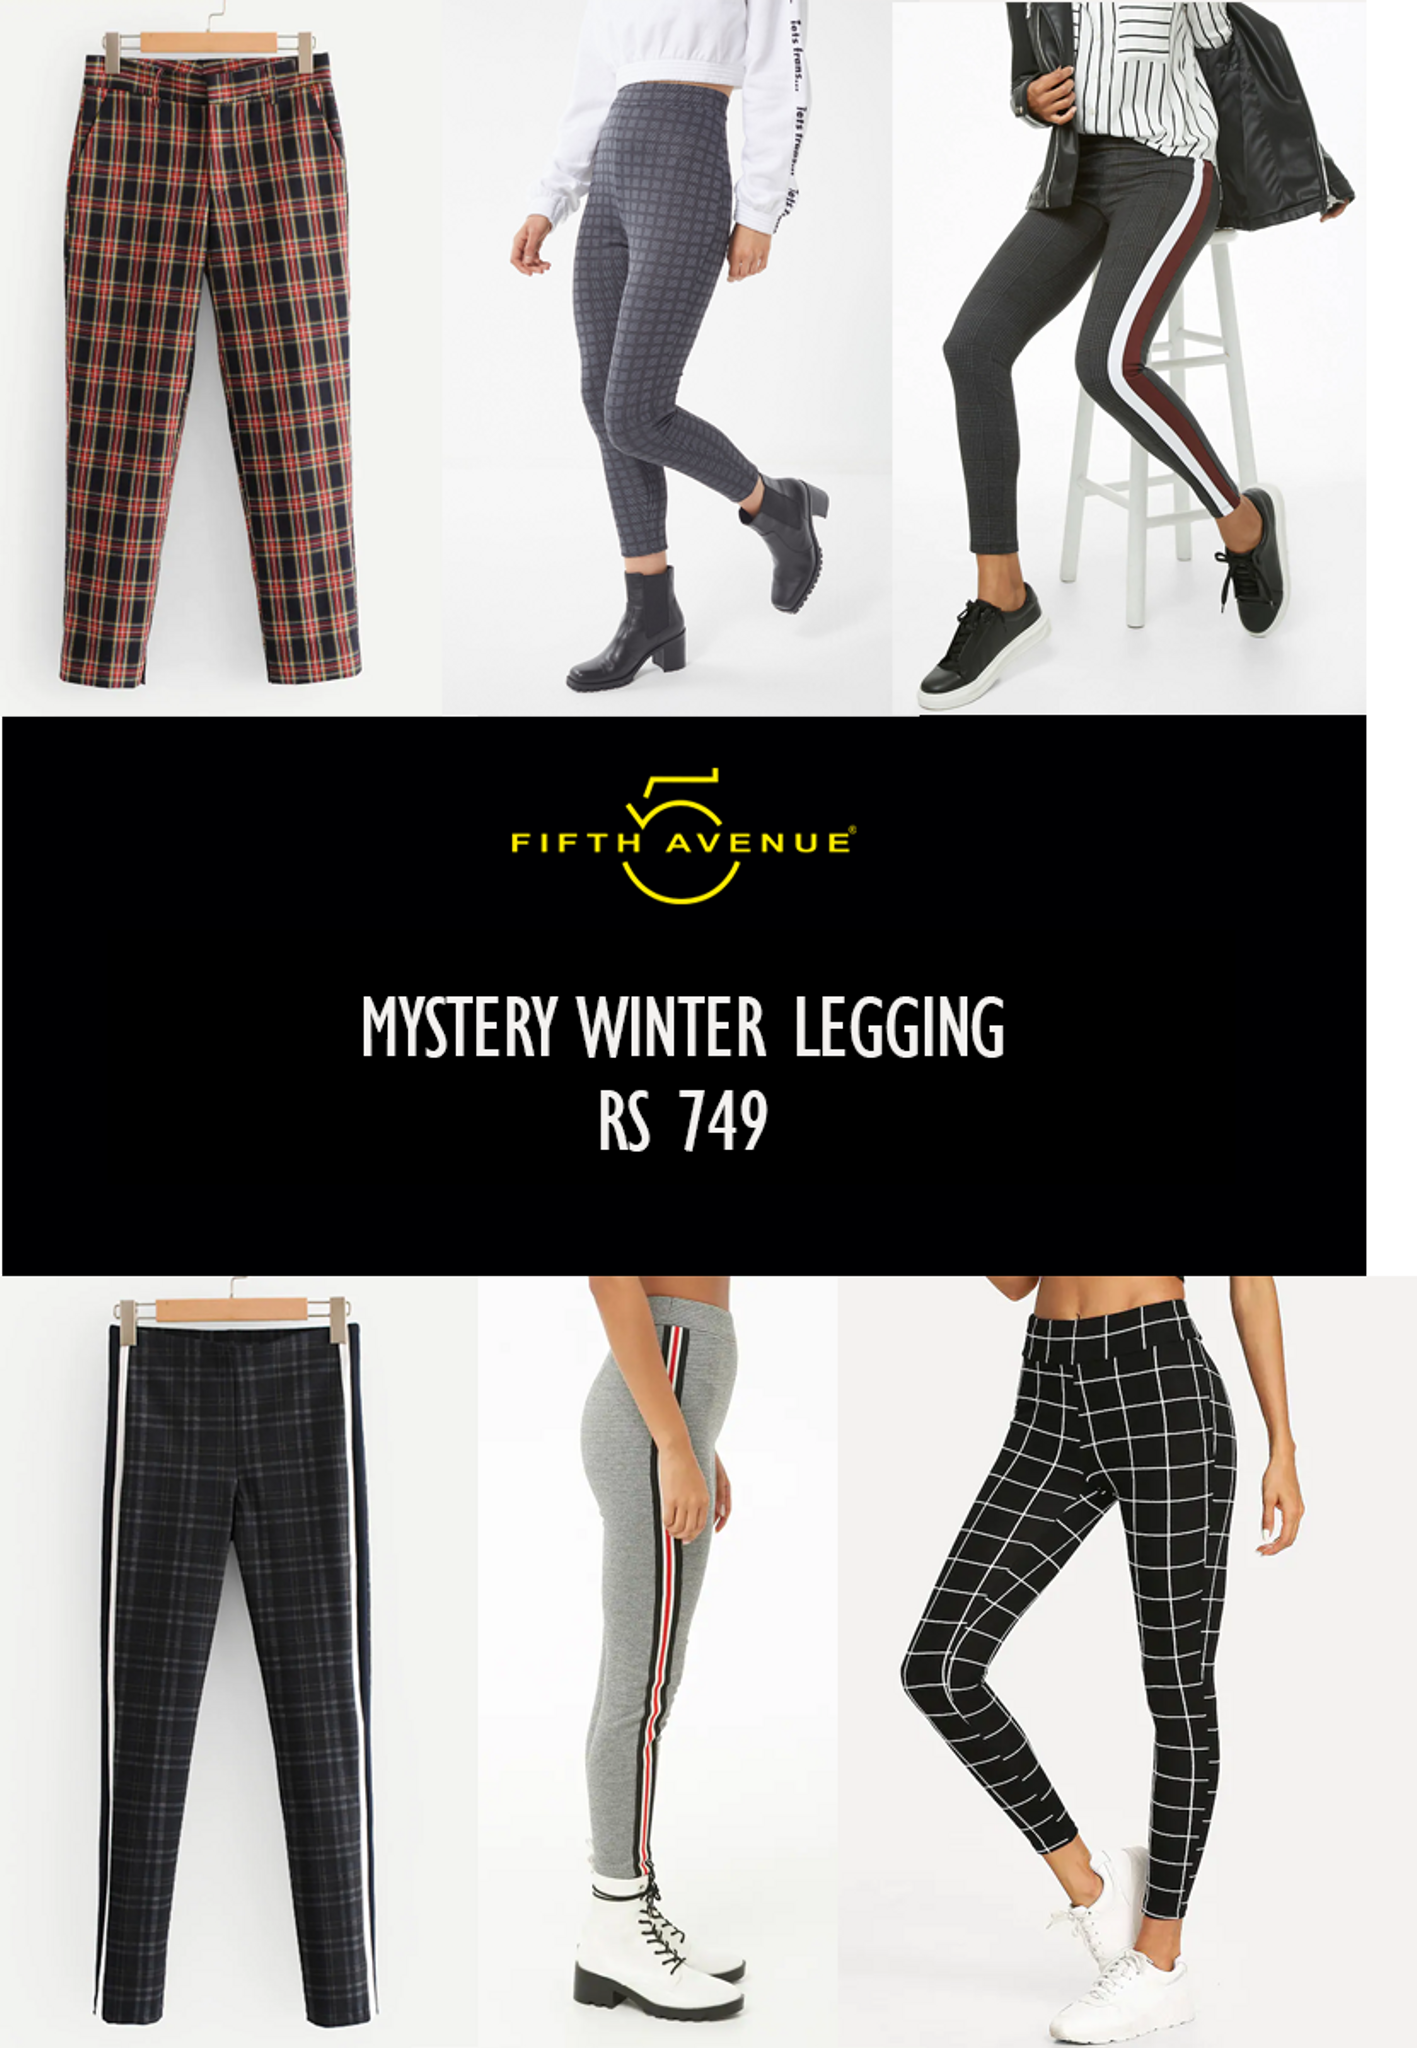 Fifth Avenue Women's Mystery Mania - Mystery Winter Leggings